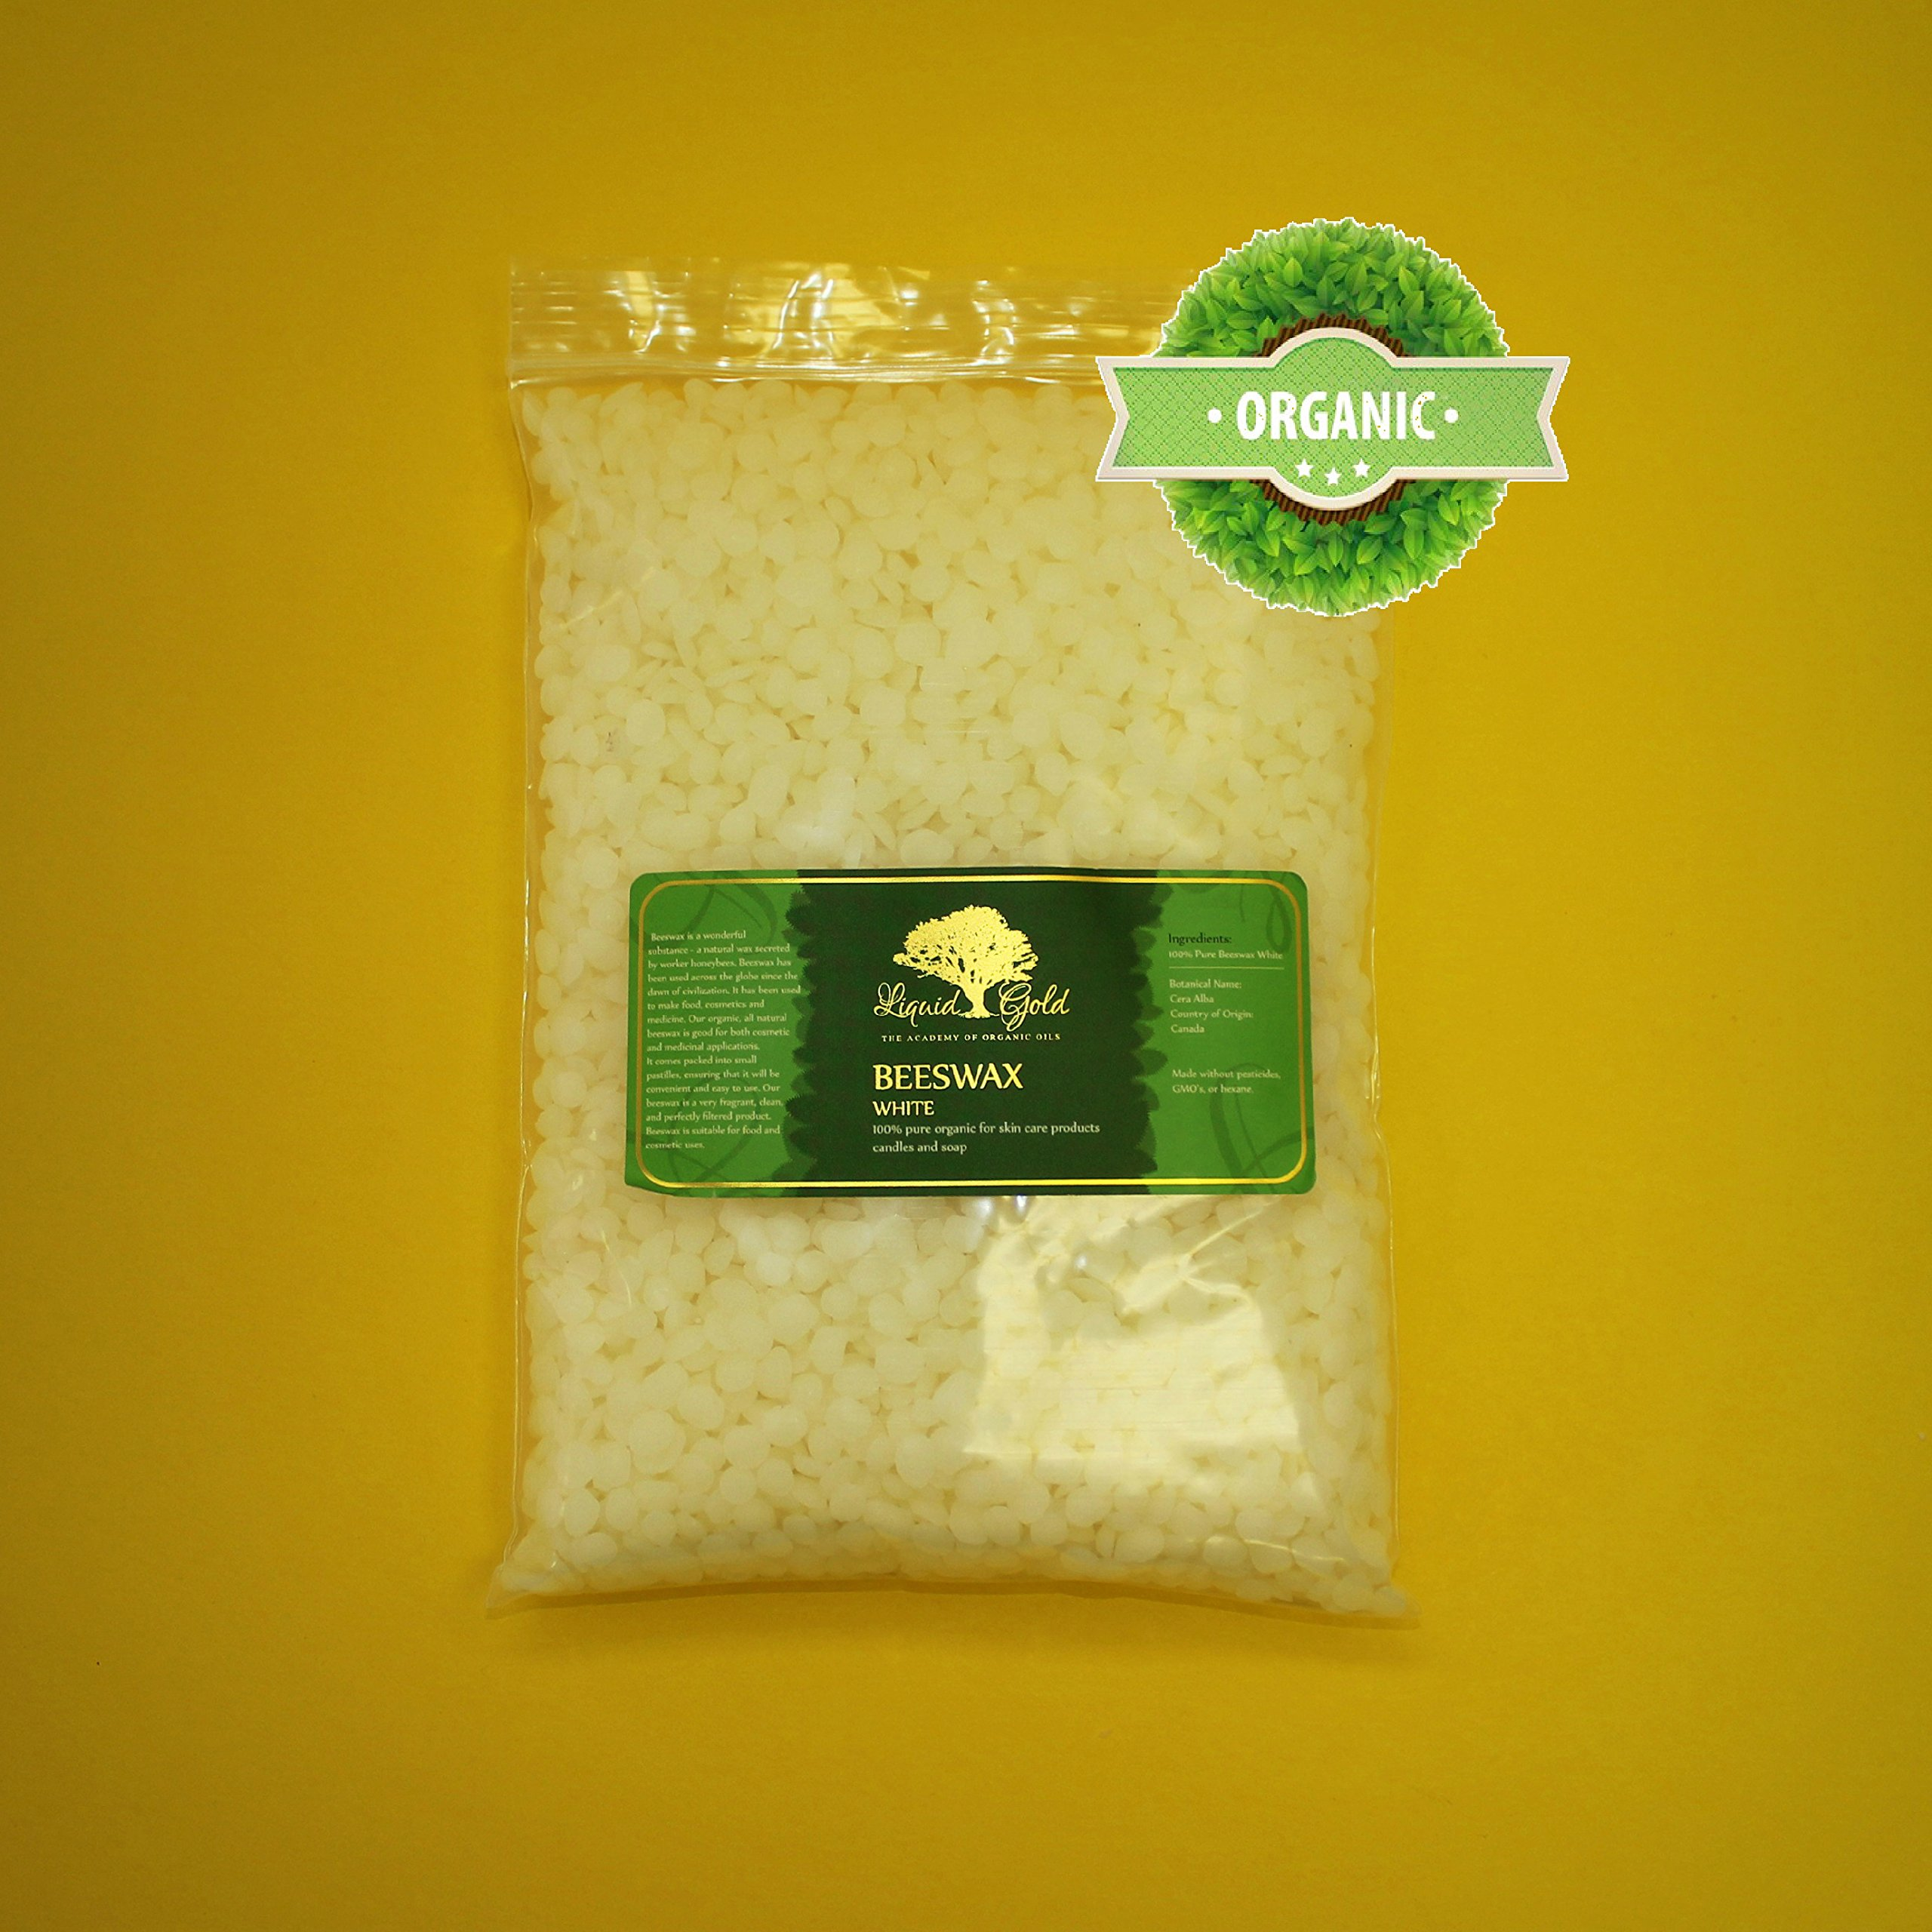 12 Pounds of Premium White Beeswax Organic Pastilles 100% Natural Pure by Liquid Gold